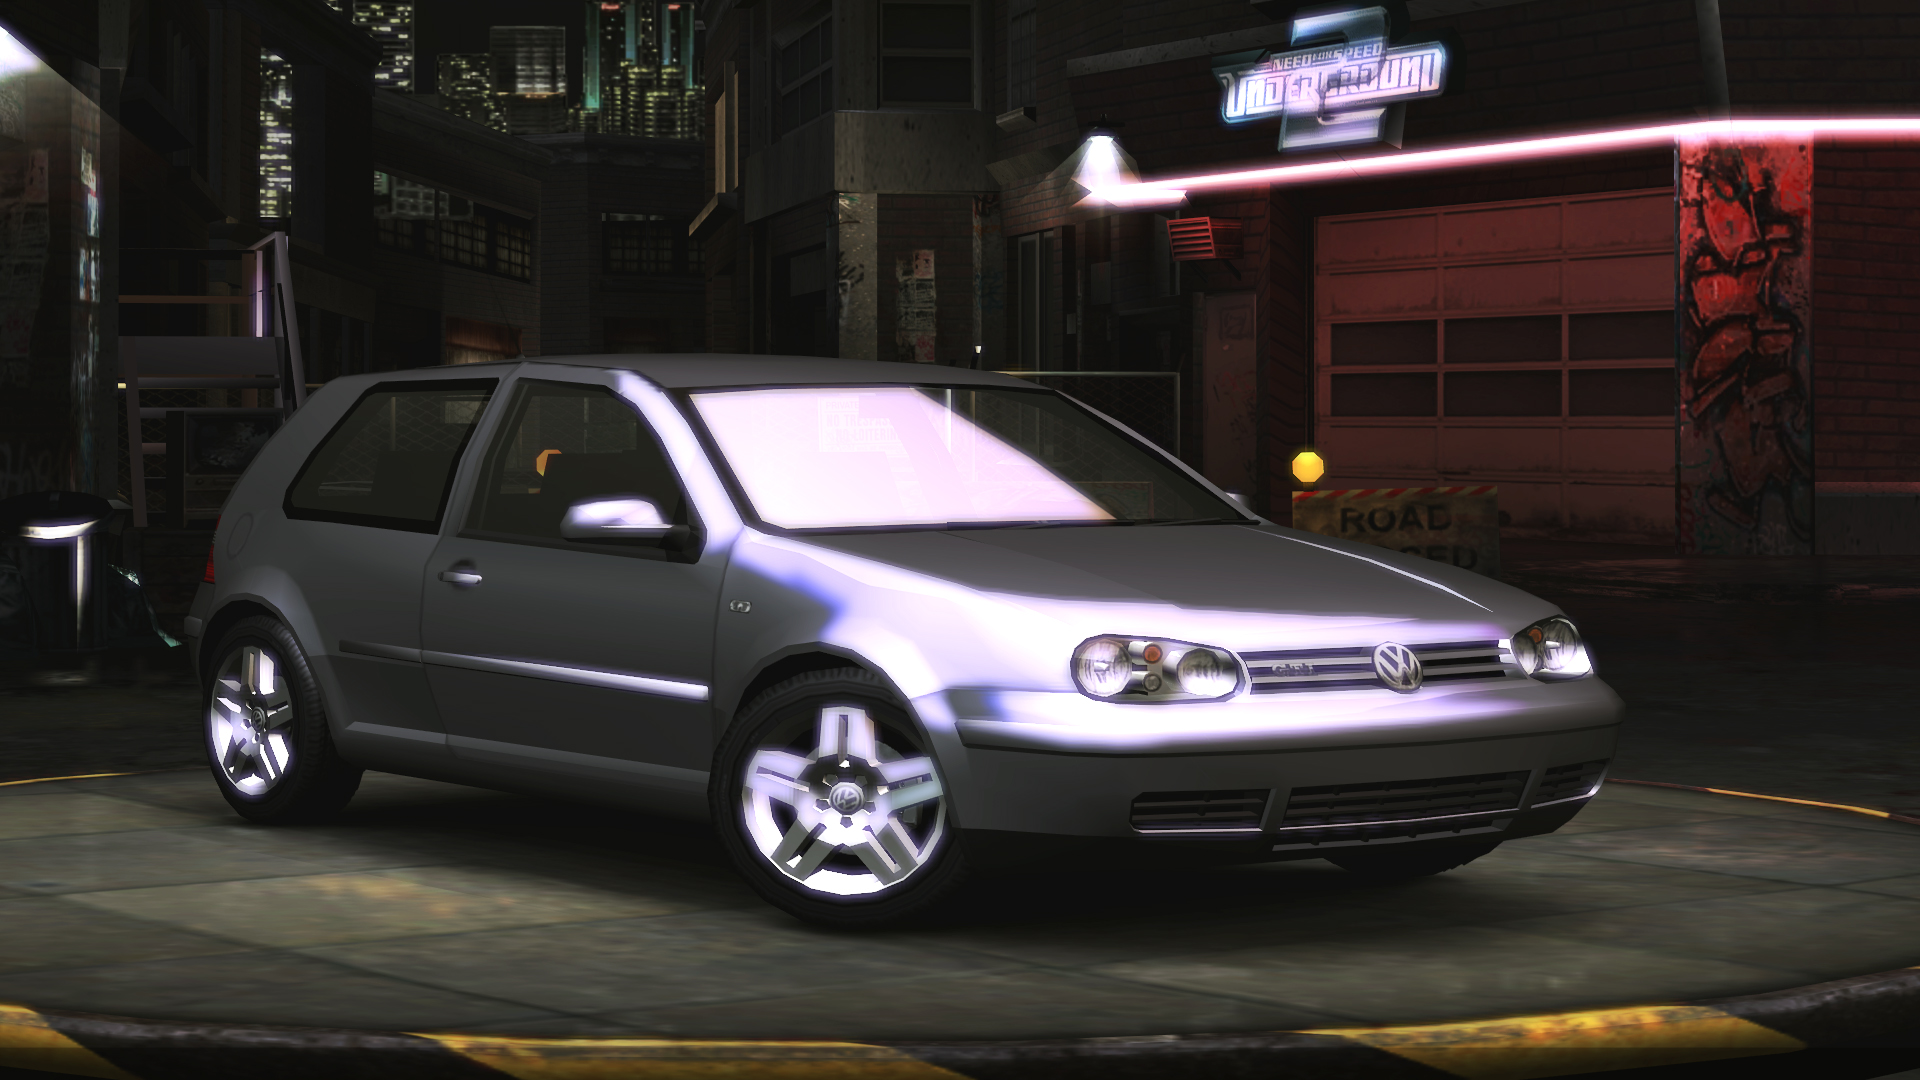 Volkswagen Golf Gti 1 8t Mk4 Need For Speed Wiki